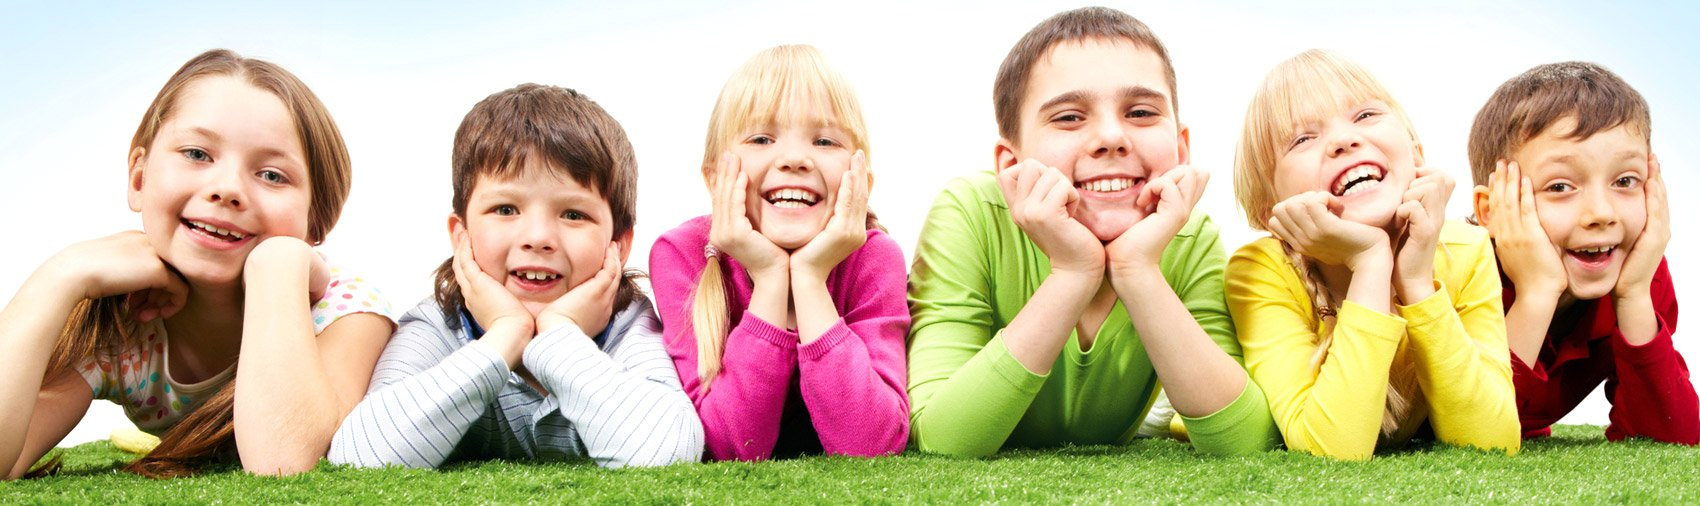 How to Prevent Cavities - Meredith Levine, DDS, Inc.